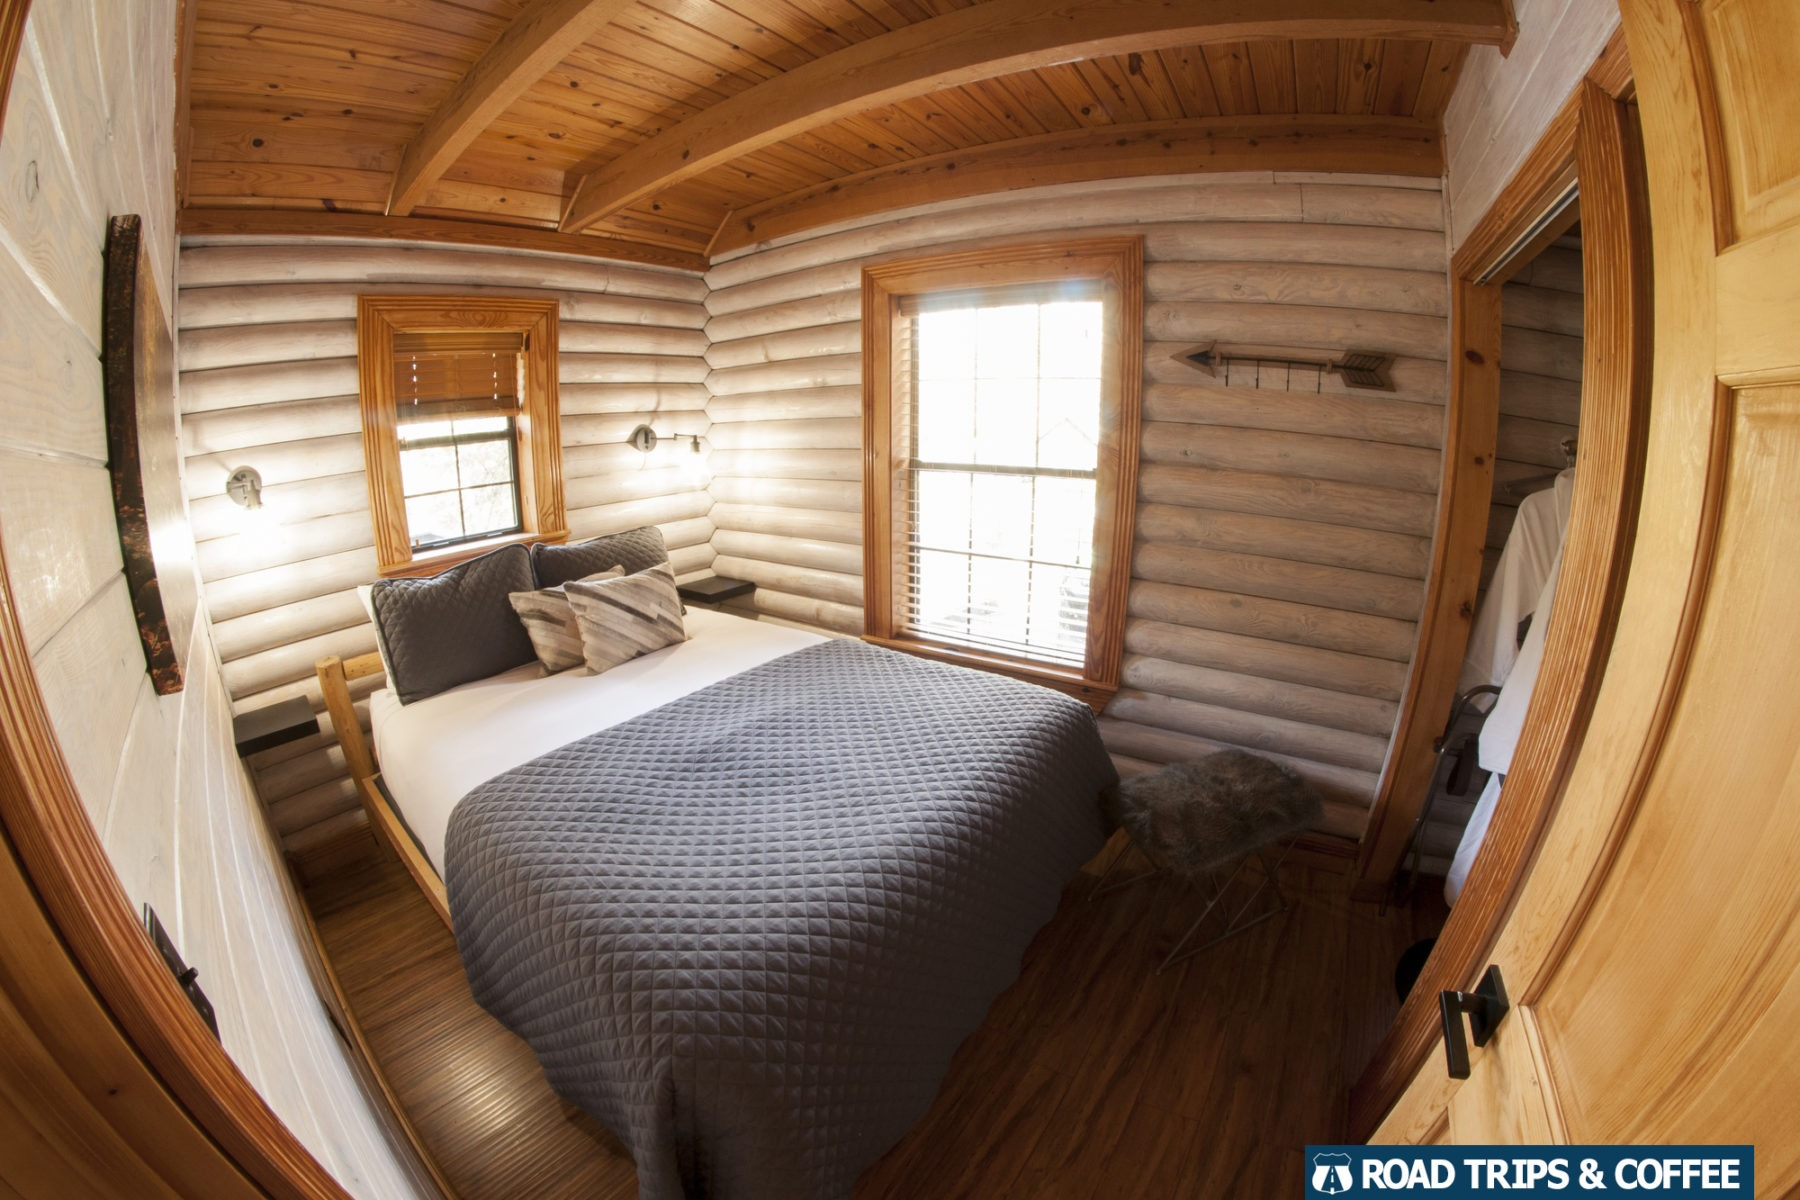 A queen bed inside the white-washed premiere cabin at Little Arrow Outdoor Resort in Townsend, Tennessee